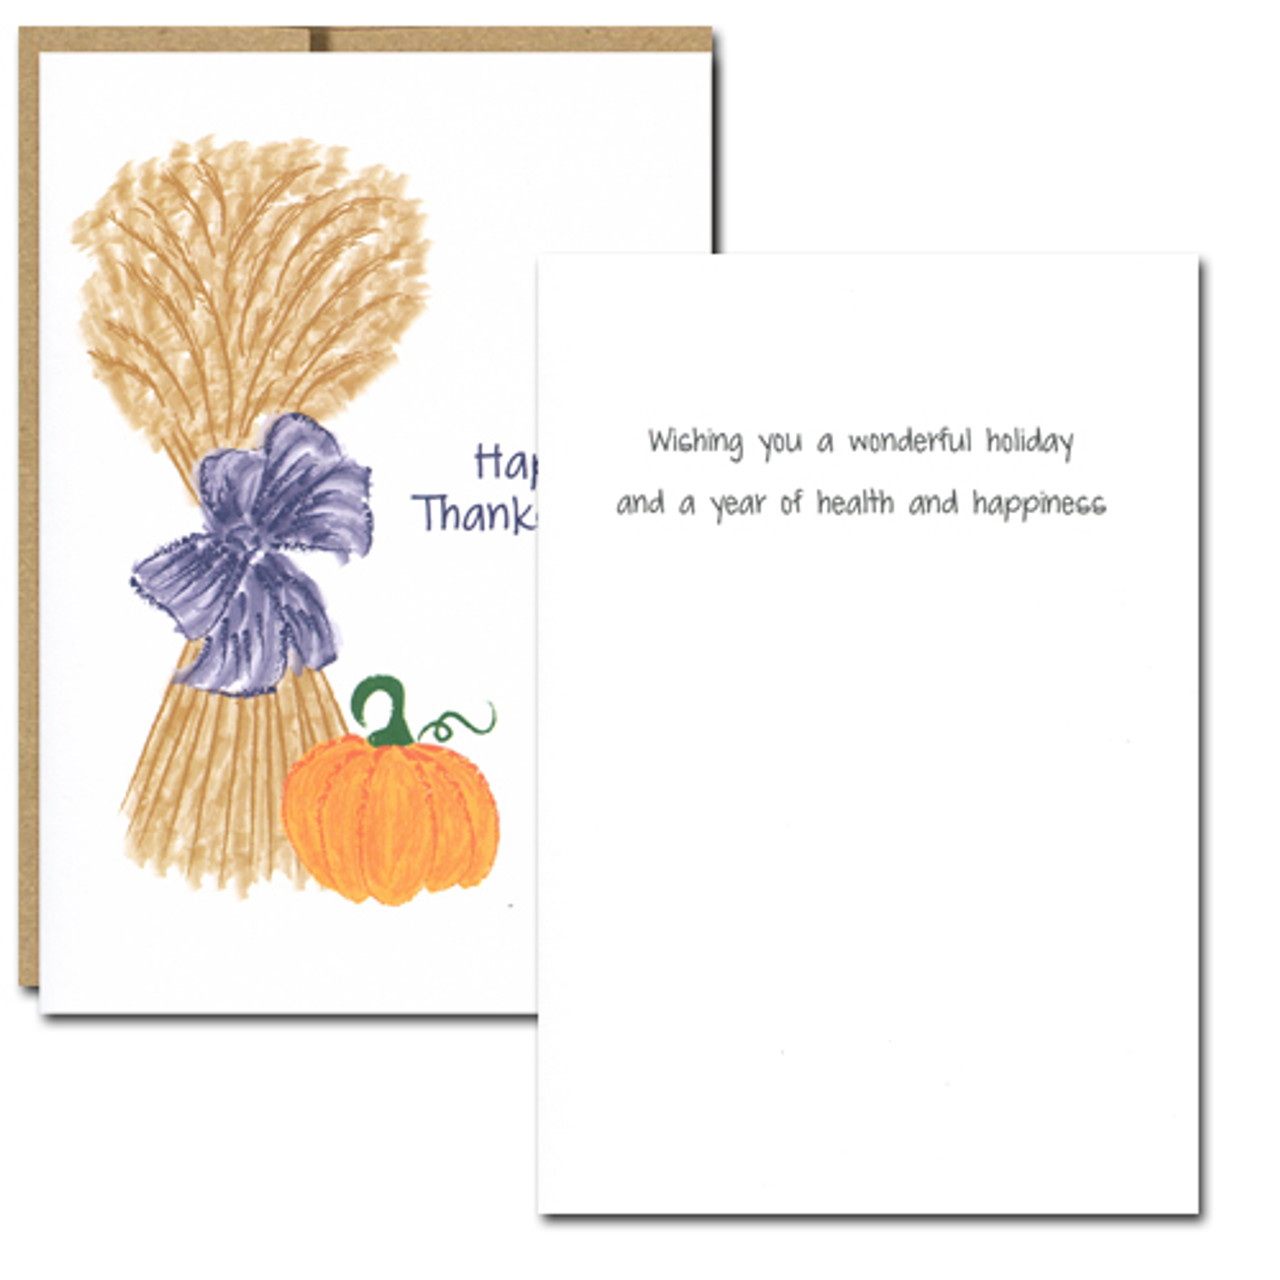 "Harvest Thanksgiving Card - inside greeting reads, ""Wishing you a wonderful holiday and a year of health and happiness."""